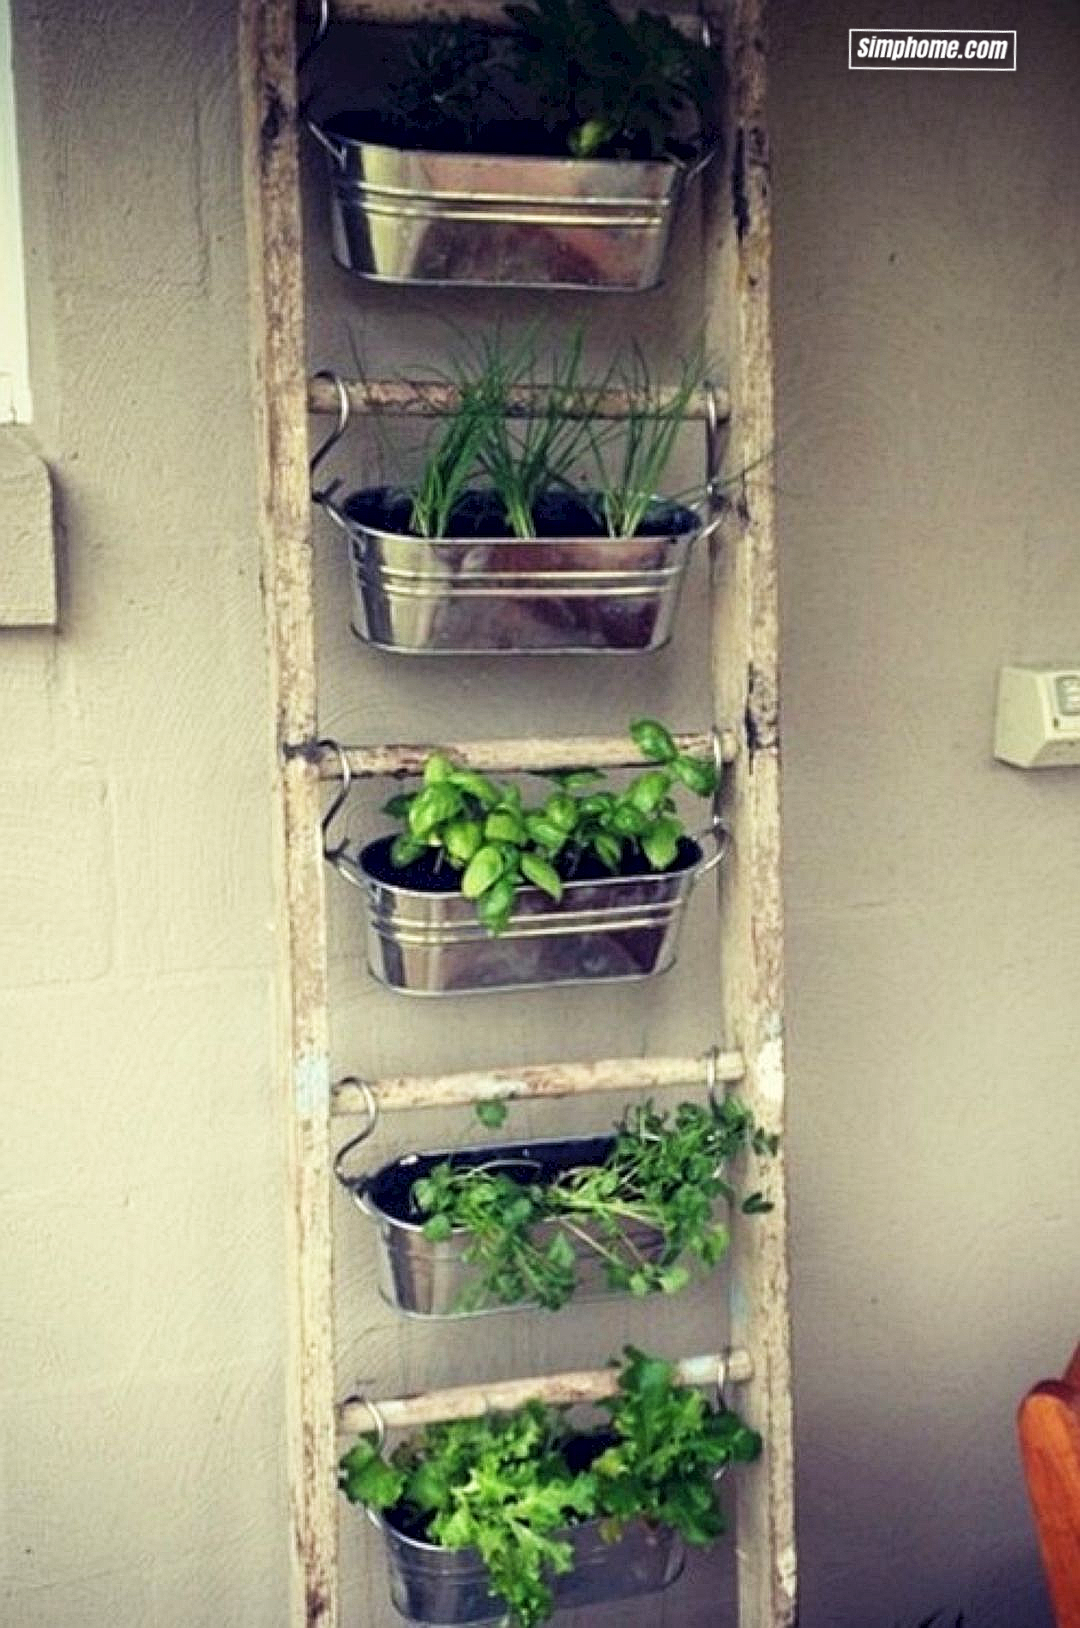 Simphome.com the best indoor herb garden ideas for your home and apartment no 44 for 2020 2021 2022